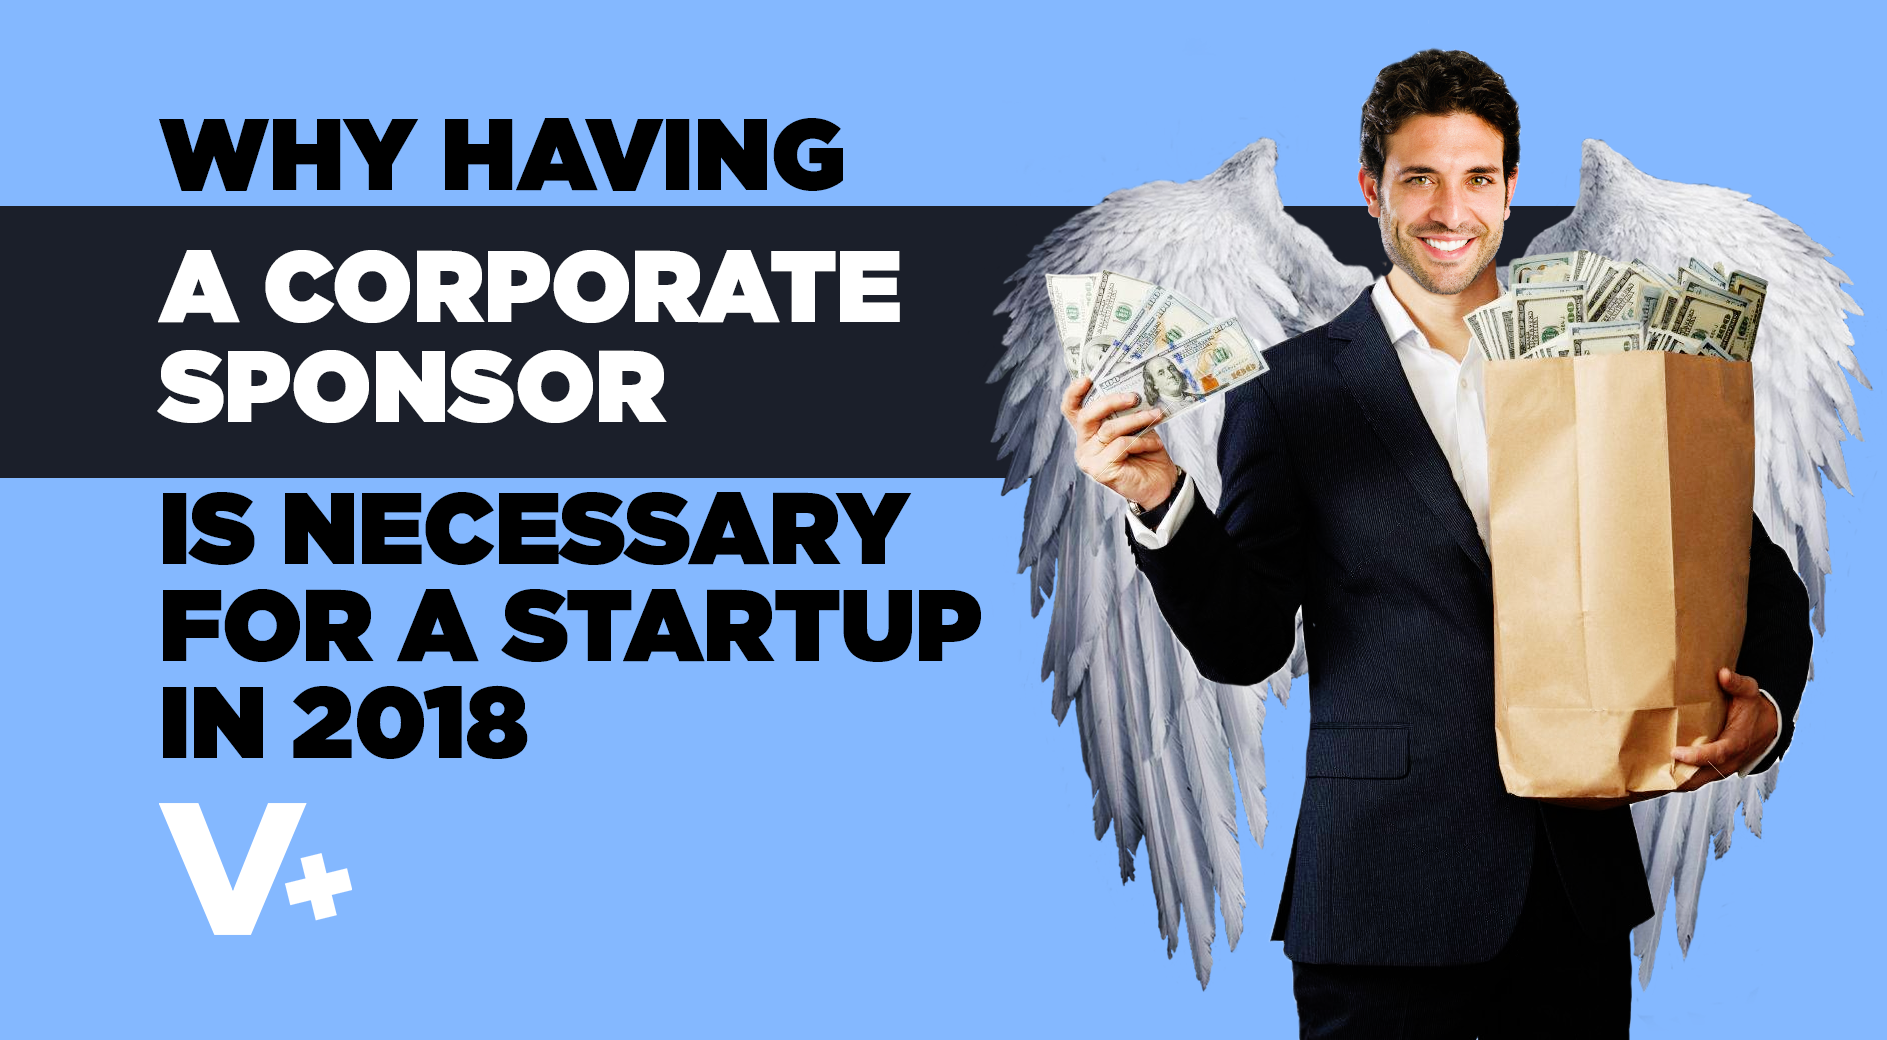 Why having a corporate sponsor is necessary for a startup in 2018